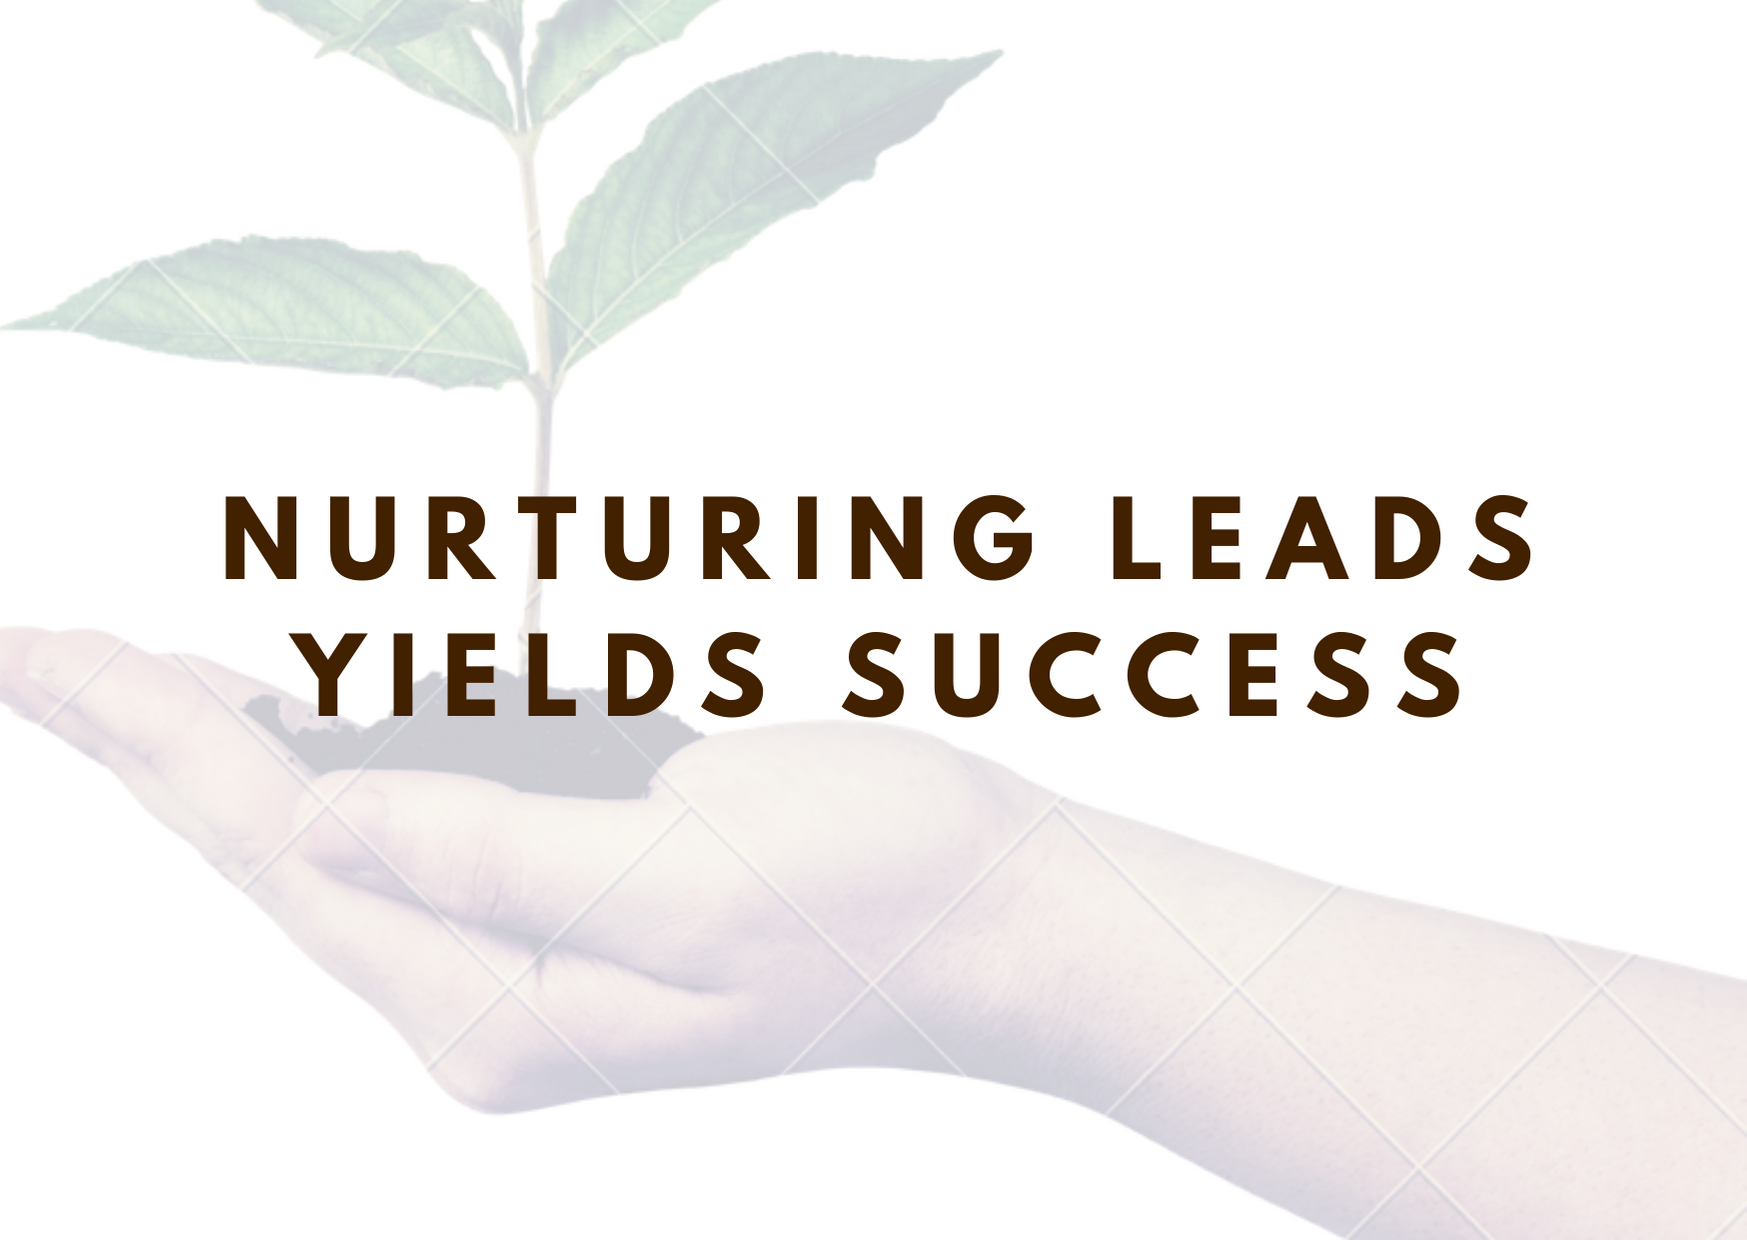 Lead nurturing coaching and strategy